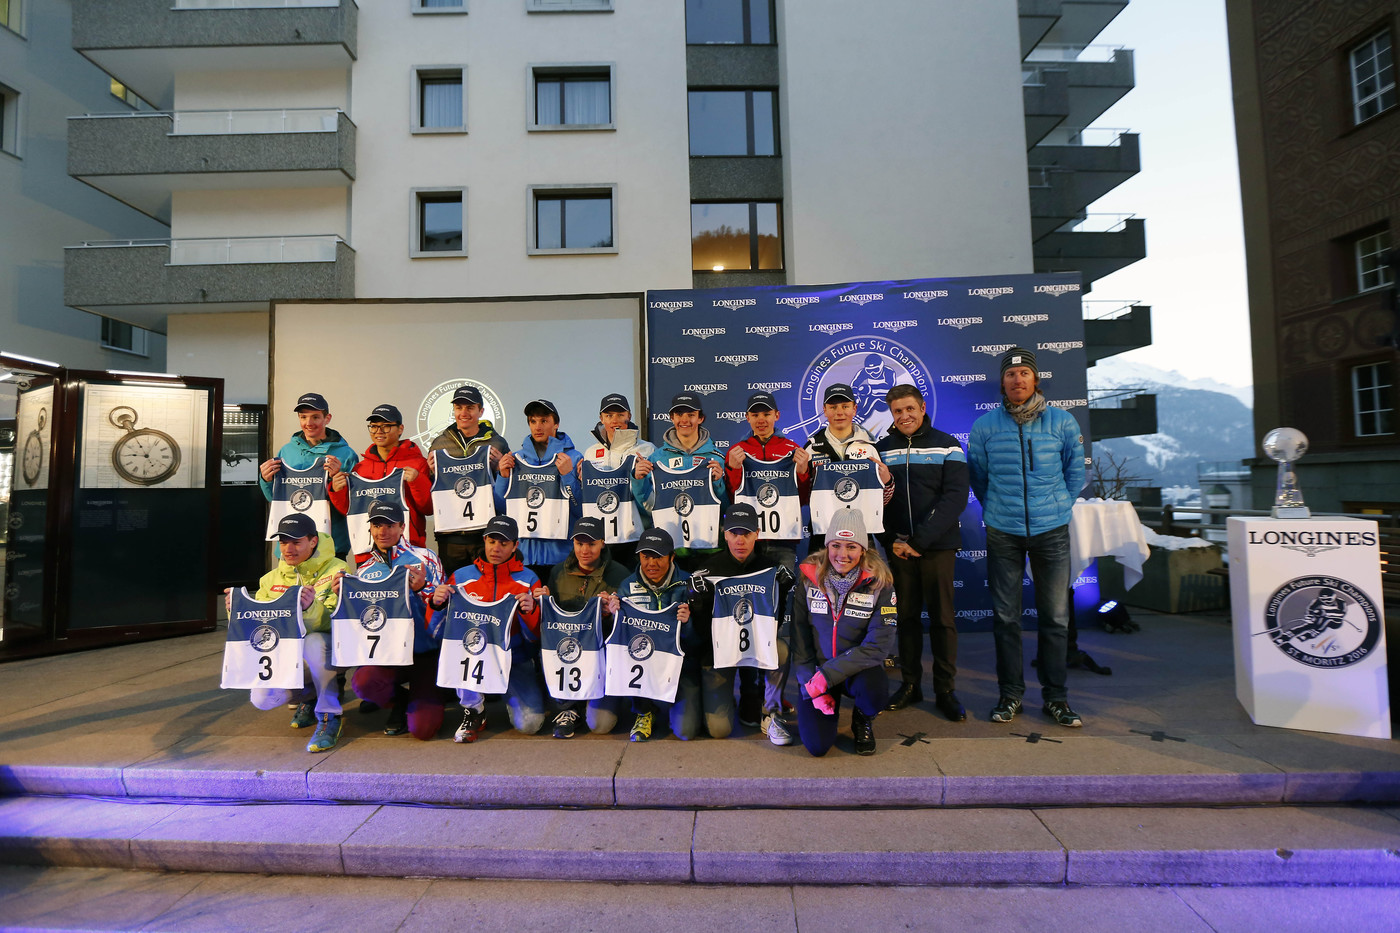 Longines Alpine Skiing Event: A new venue for the third edition of the Longines Future Ski Champions 9